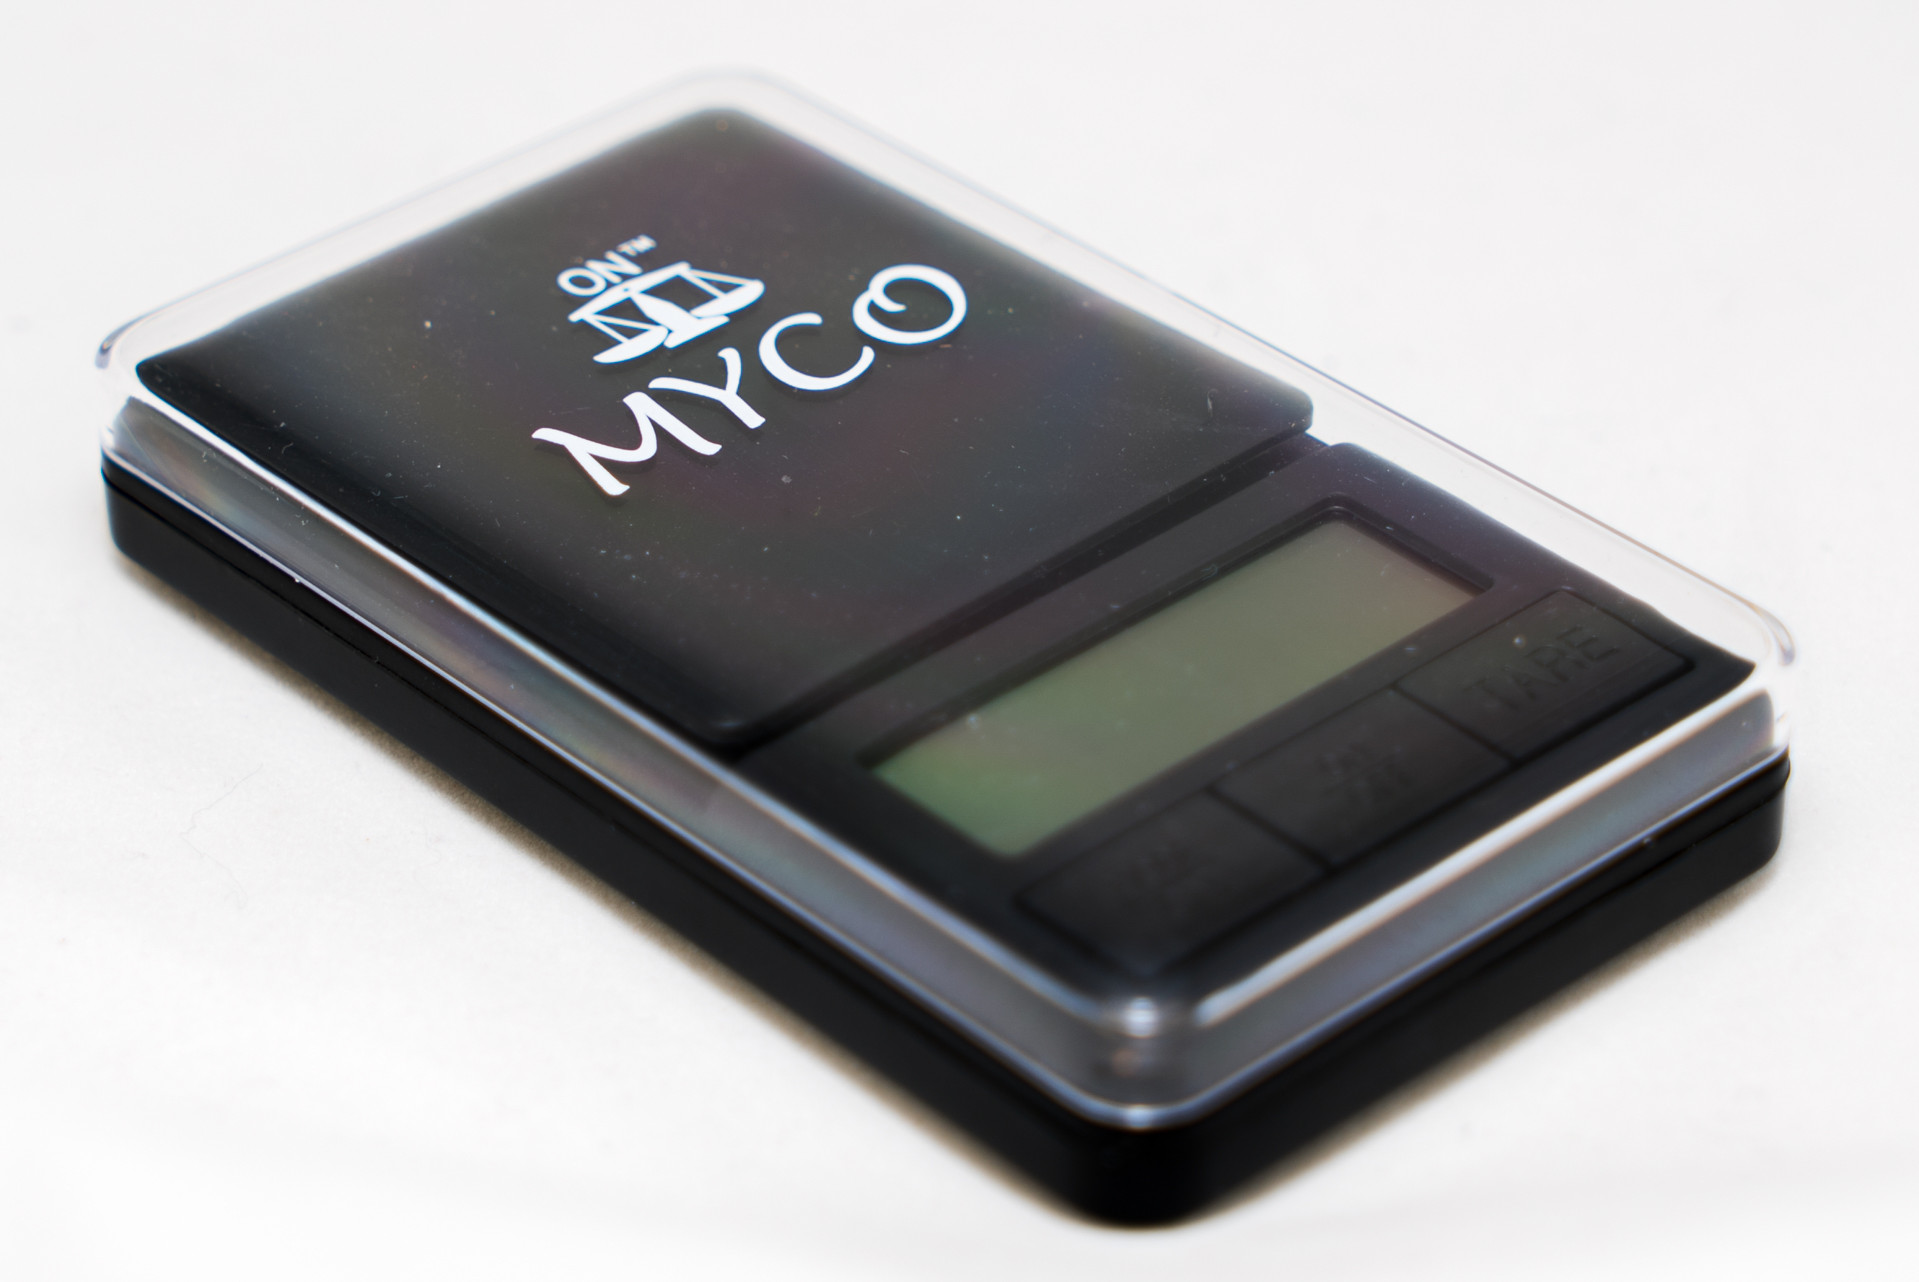 Myco MV-Series Mini Bilancia (100g x 0.01g)